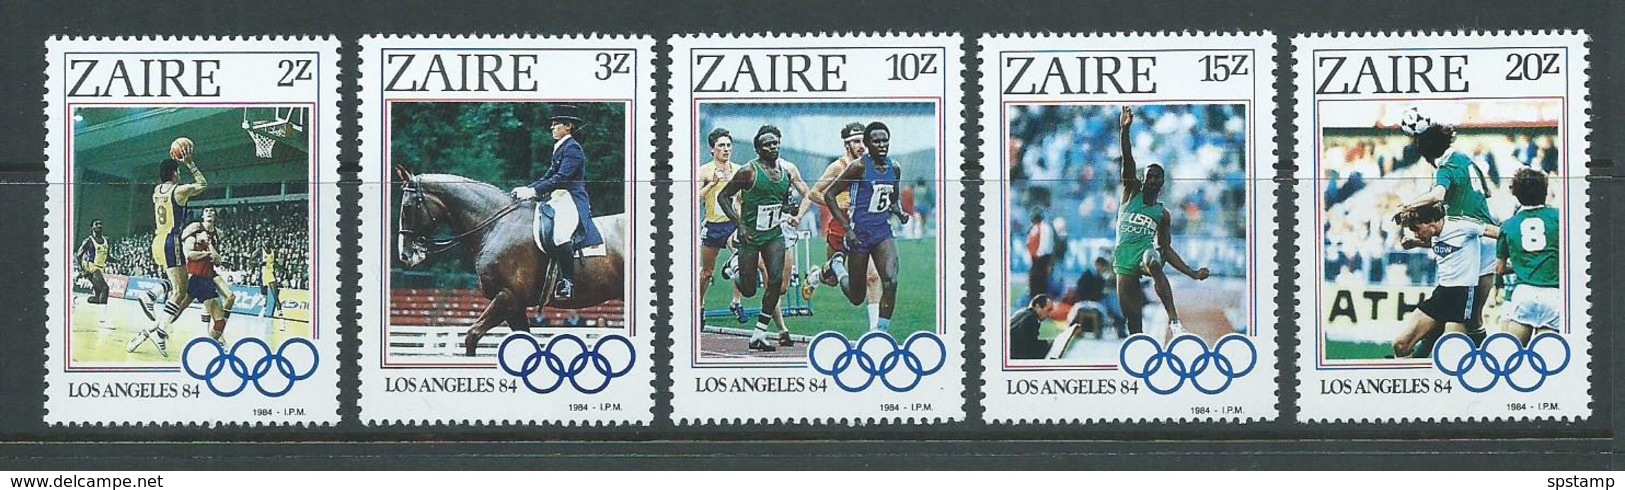 Zaire 1984 Los Angeles Olympic Games Set Of 5 MNH - Stamps